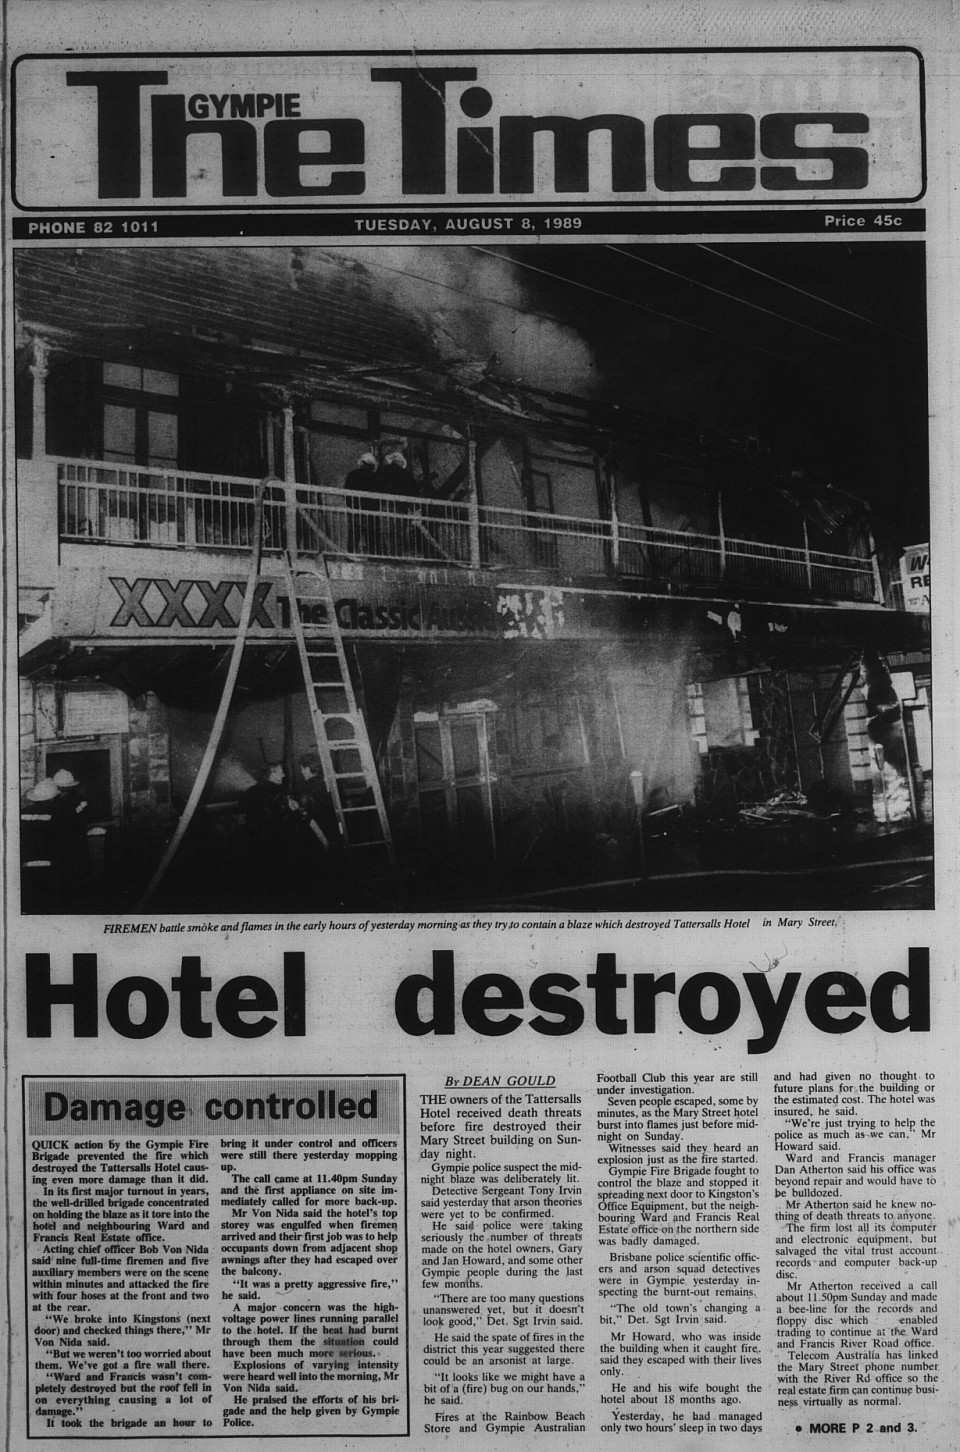 GT Tuesday, August 8, 1989 p.1 Hotel Destroyed